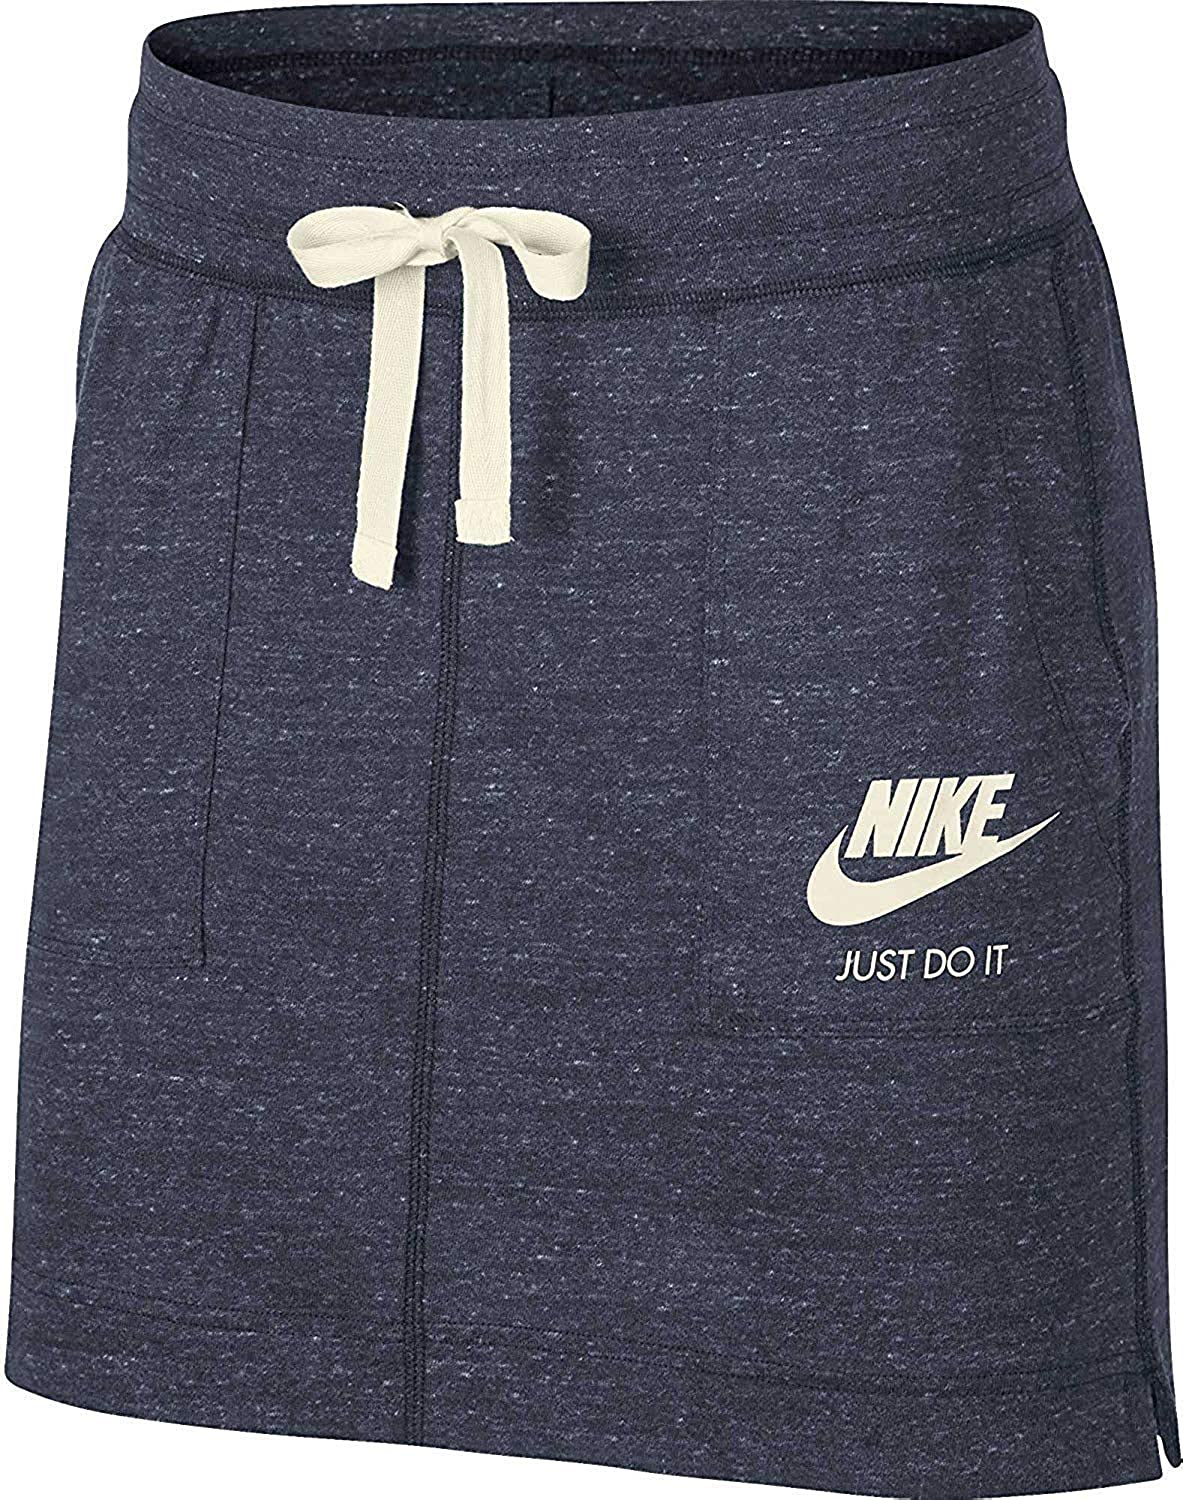 Nike Womens Fitness Active Skirt